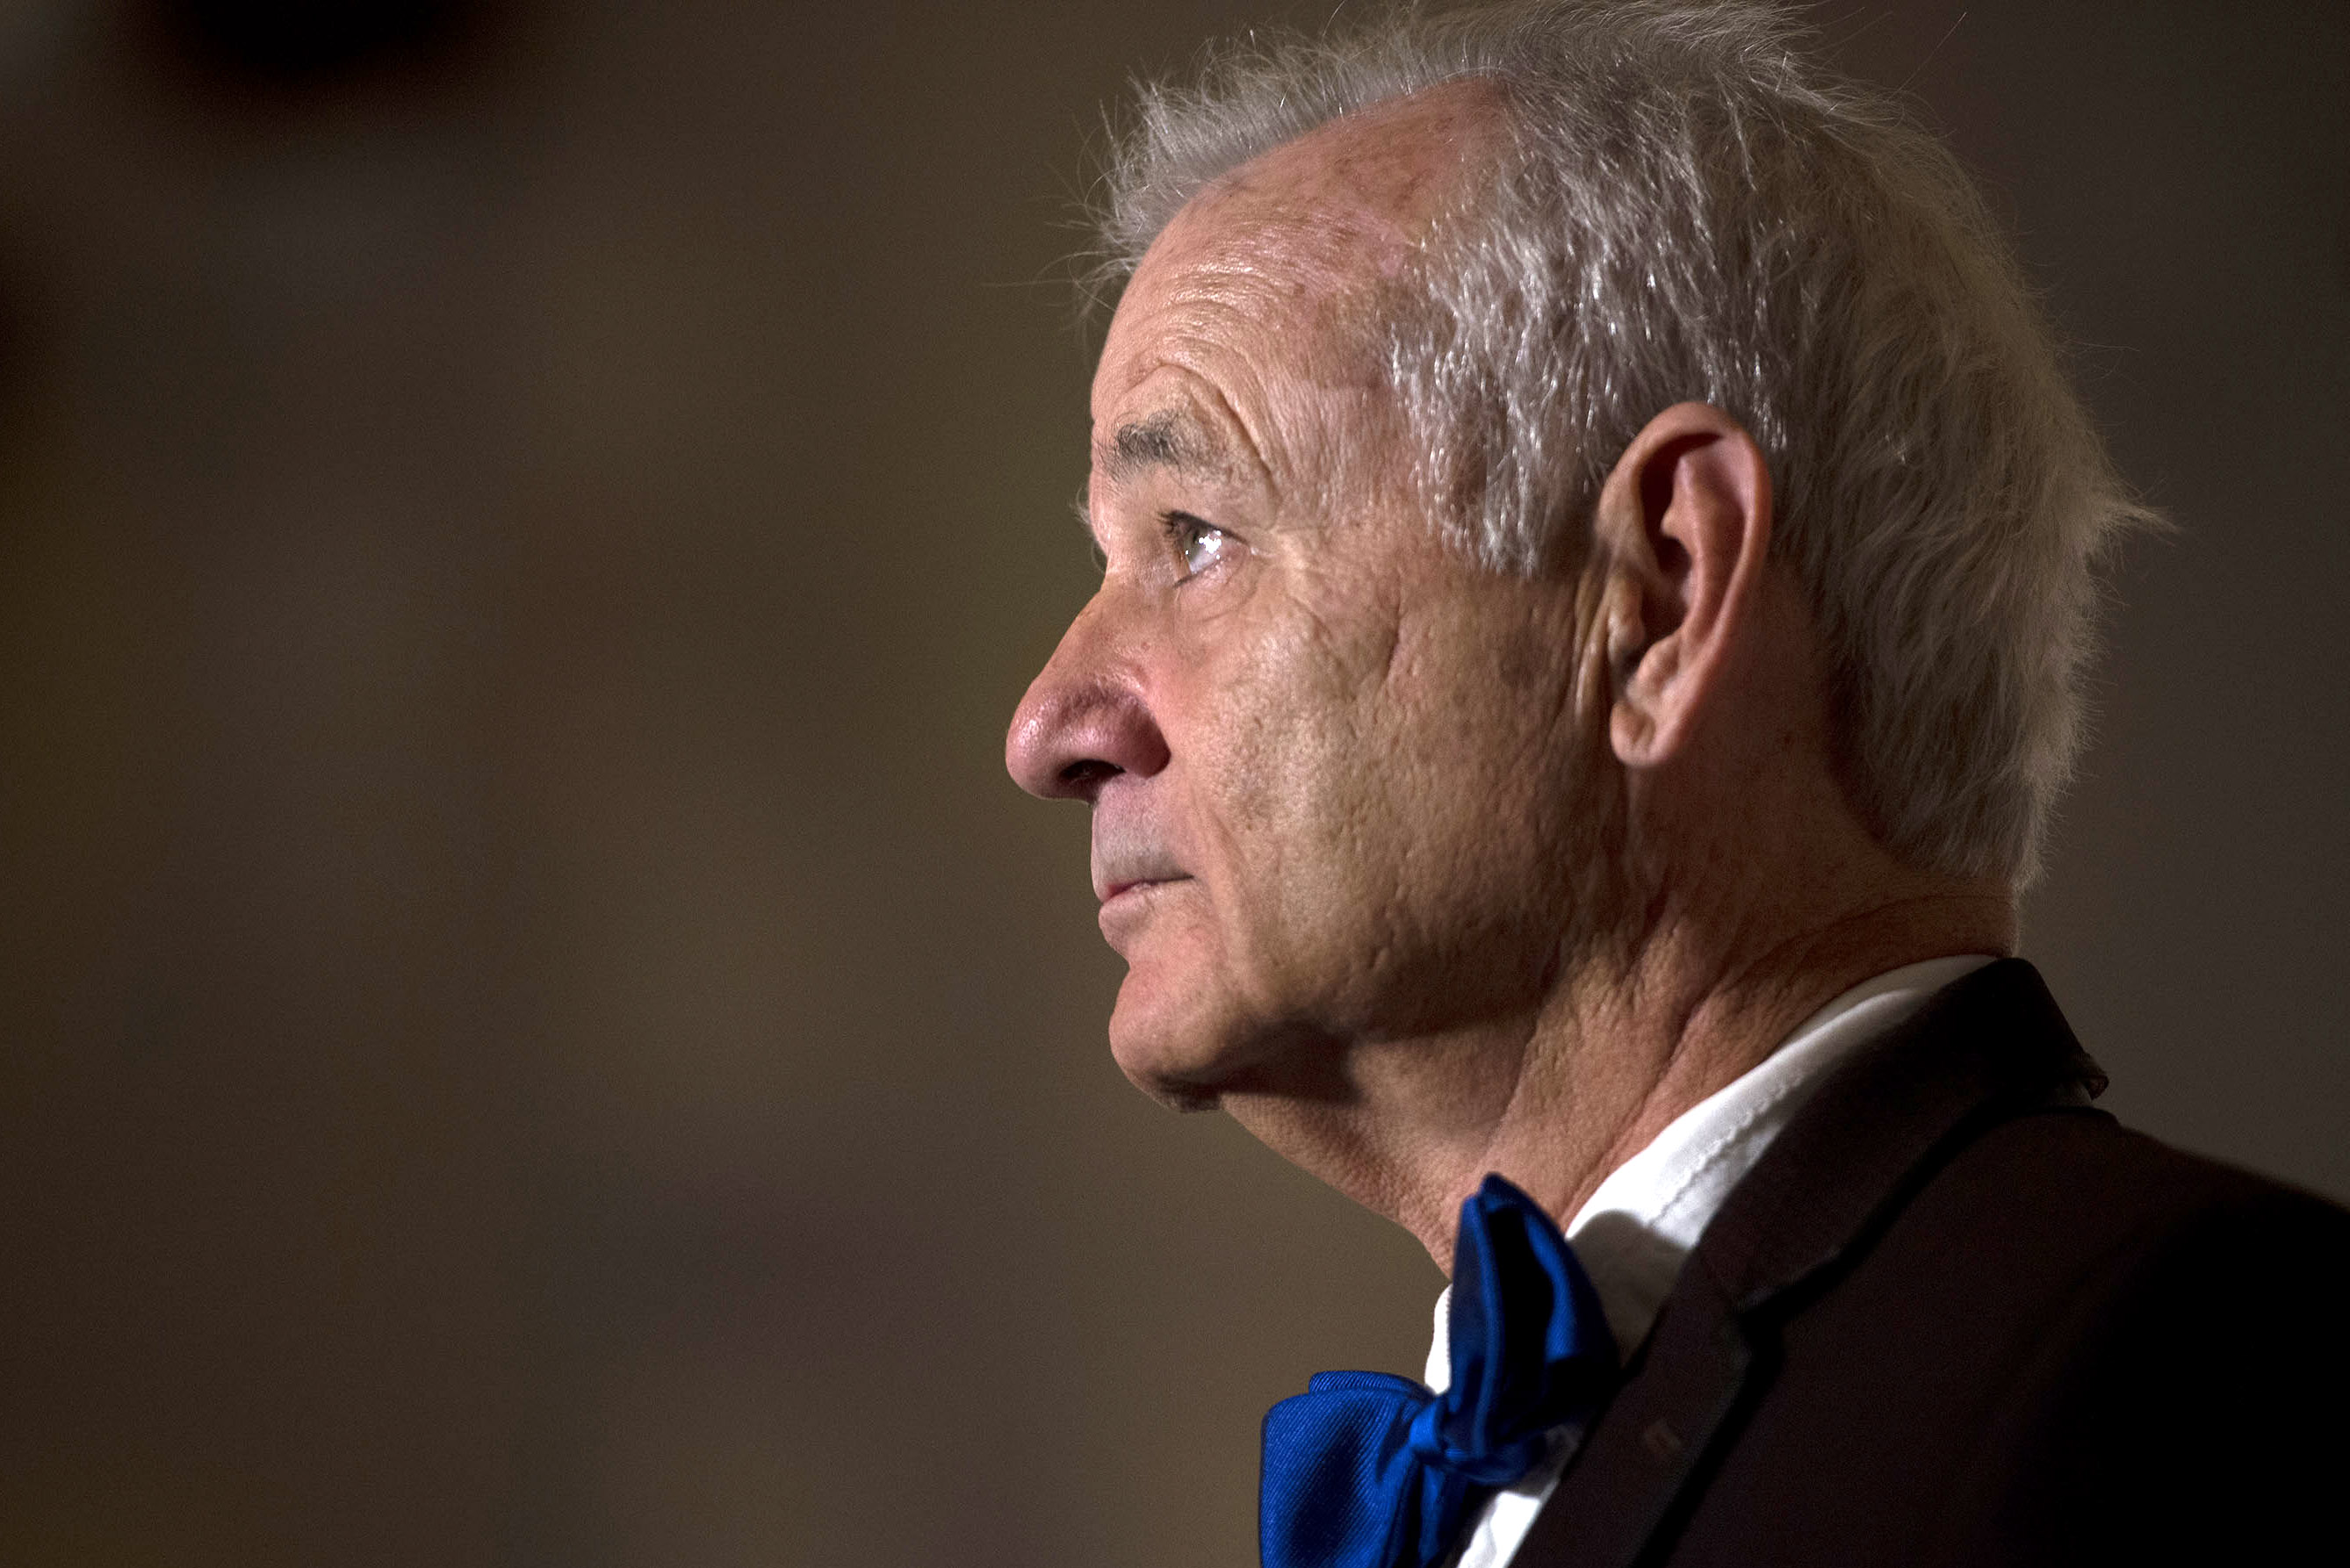 Bill Murray arrives at the Kennedy Center where the actor received the 19th Annual Mark Twain Prize on Oct. 23, 2016 in Washington, DC.